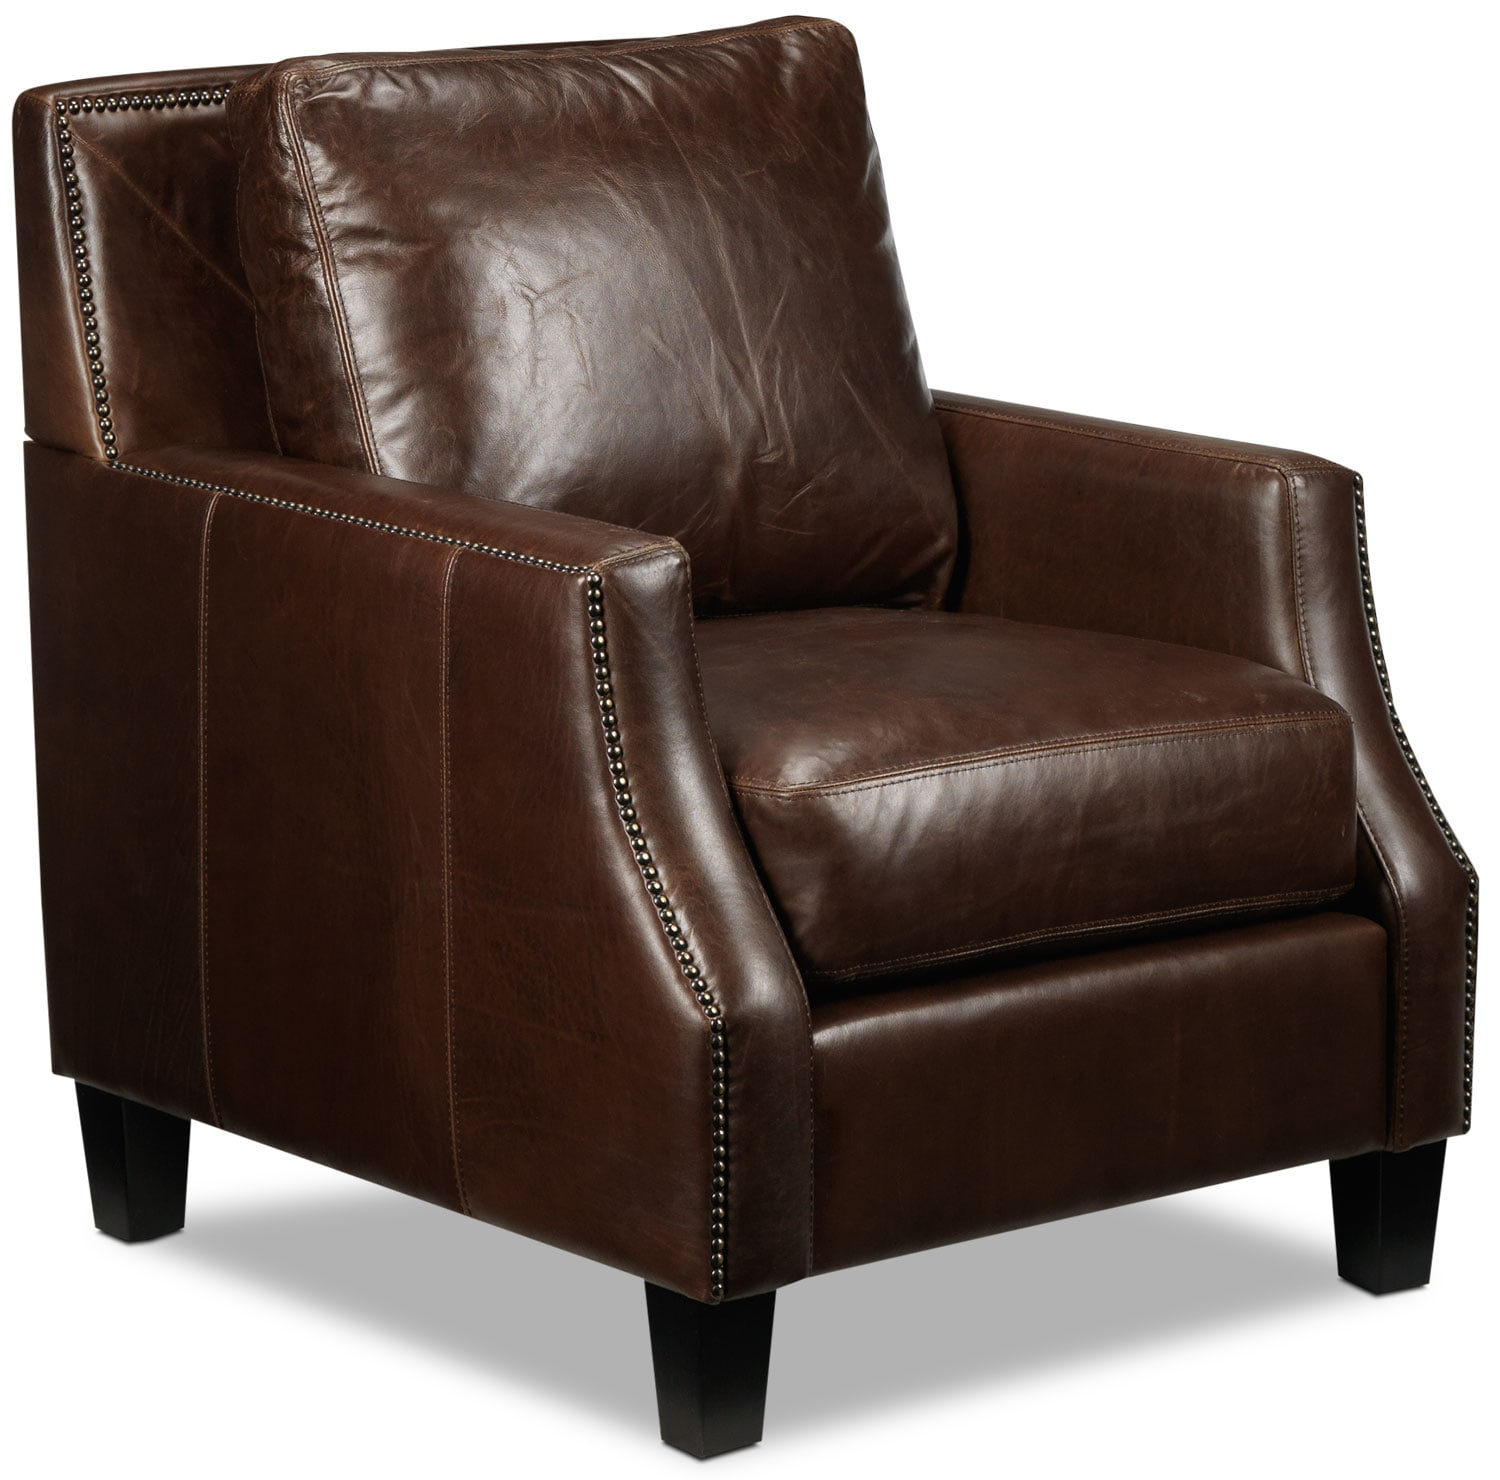 Living Room Furniture - Dallas Chair - Brown